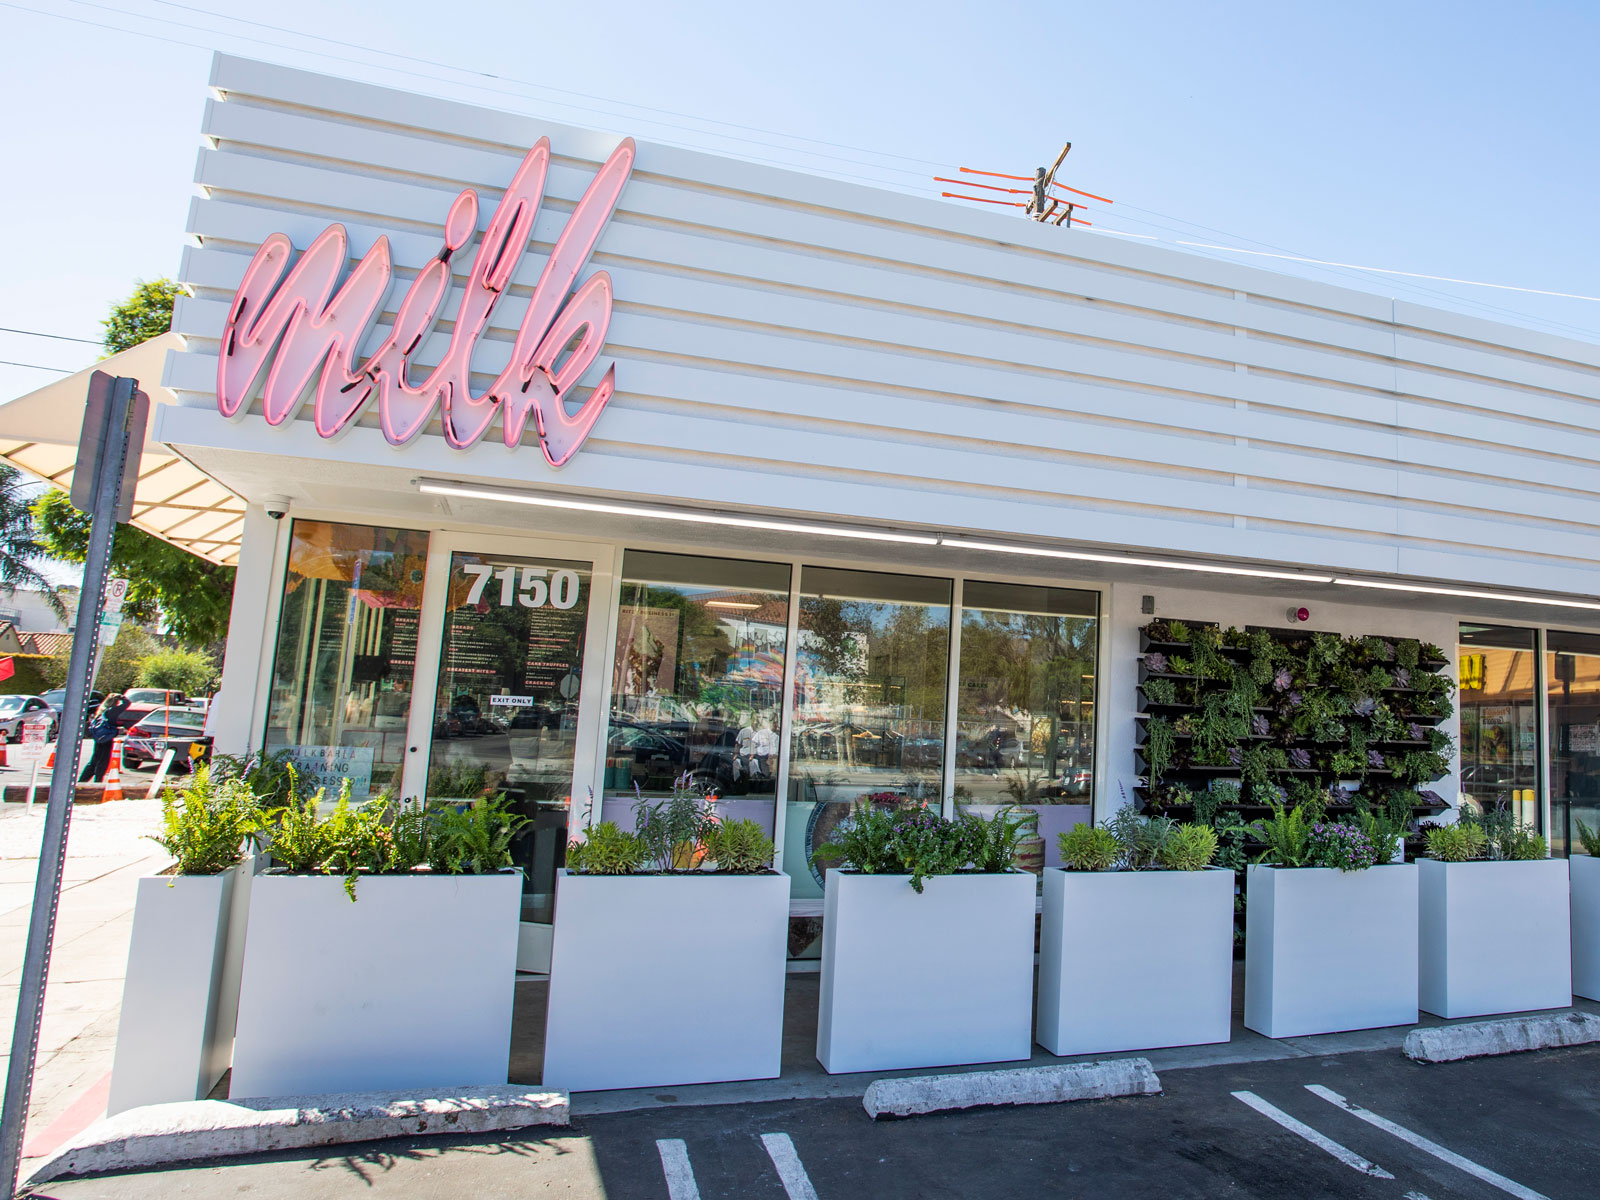 Christina Tosi's Biggest Milk Bar Opens in L.A.